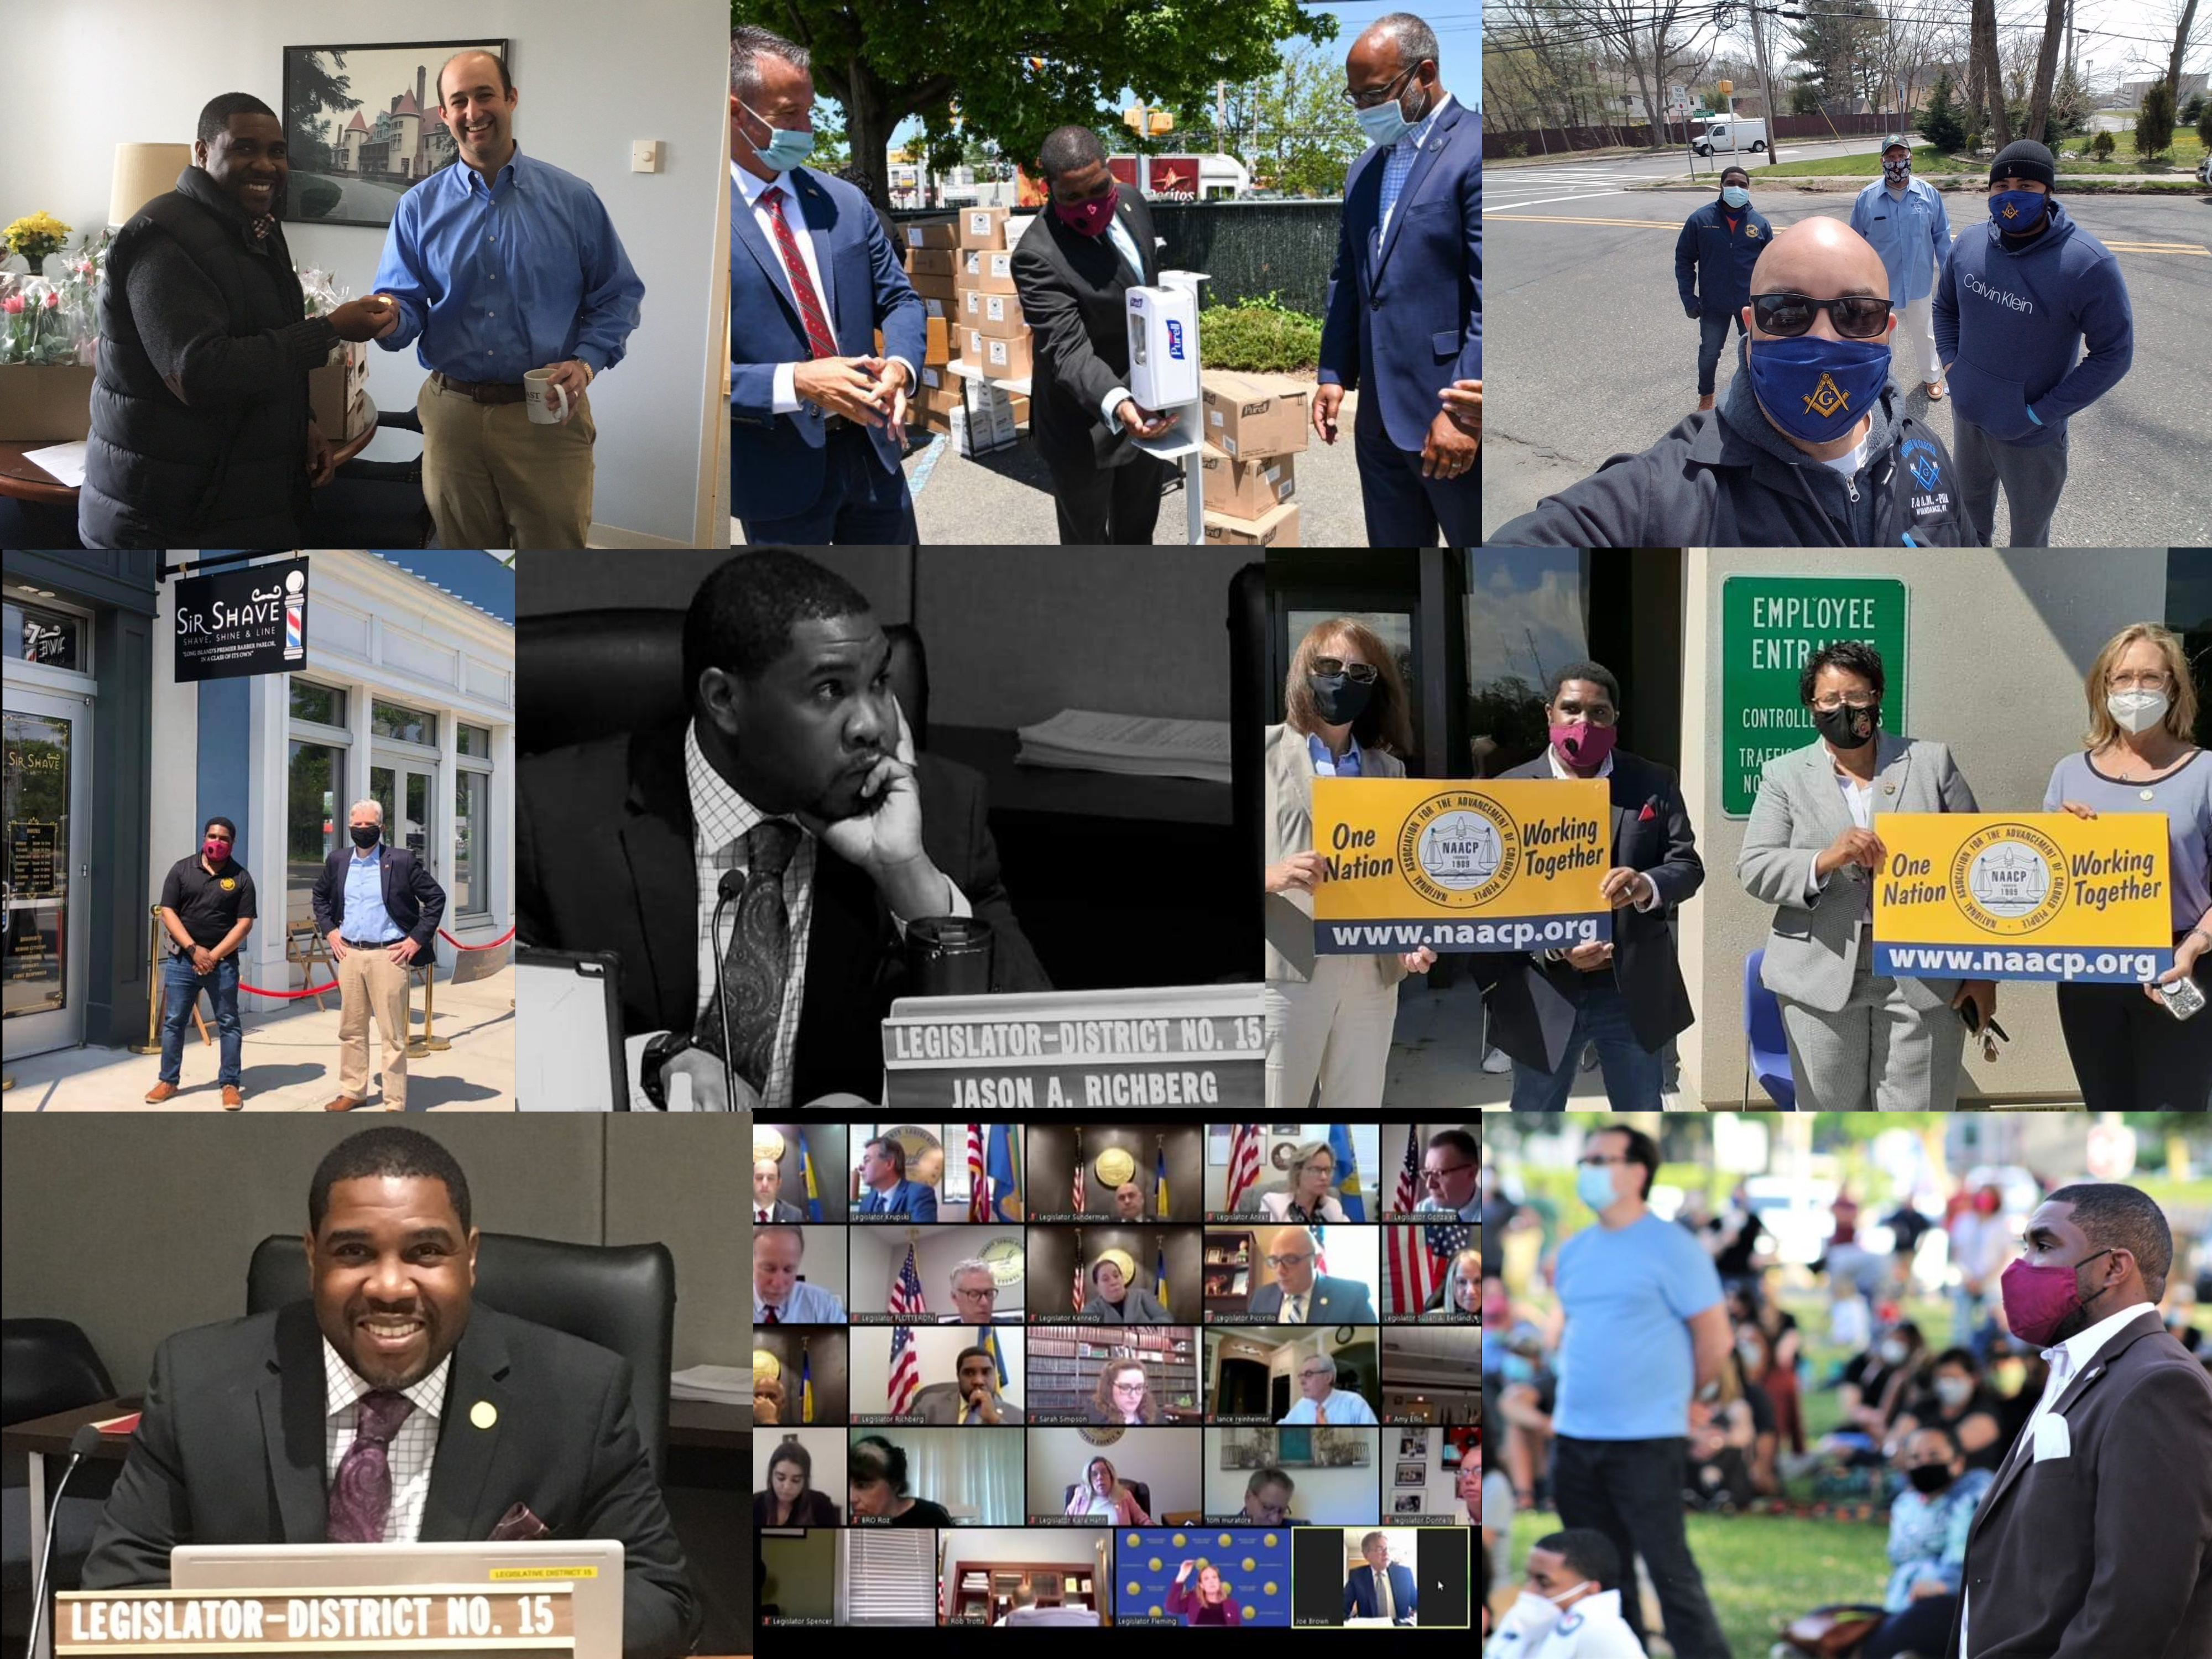 A photo collage of Legislator Richberg's first 100 days in office.